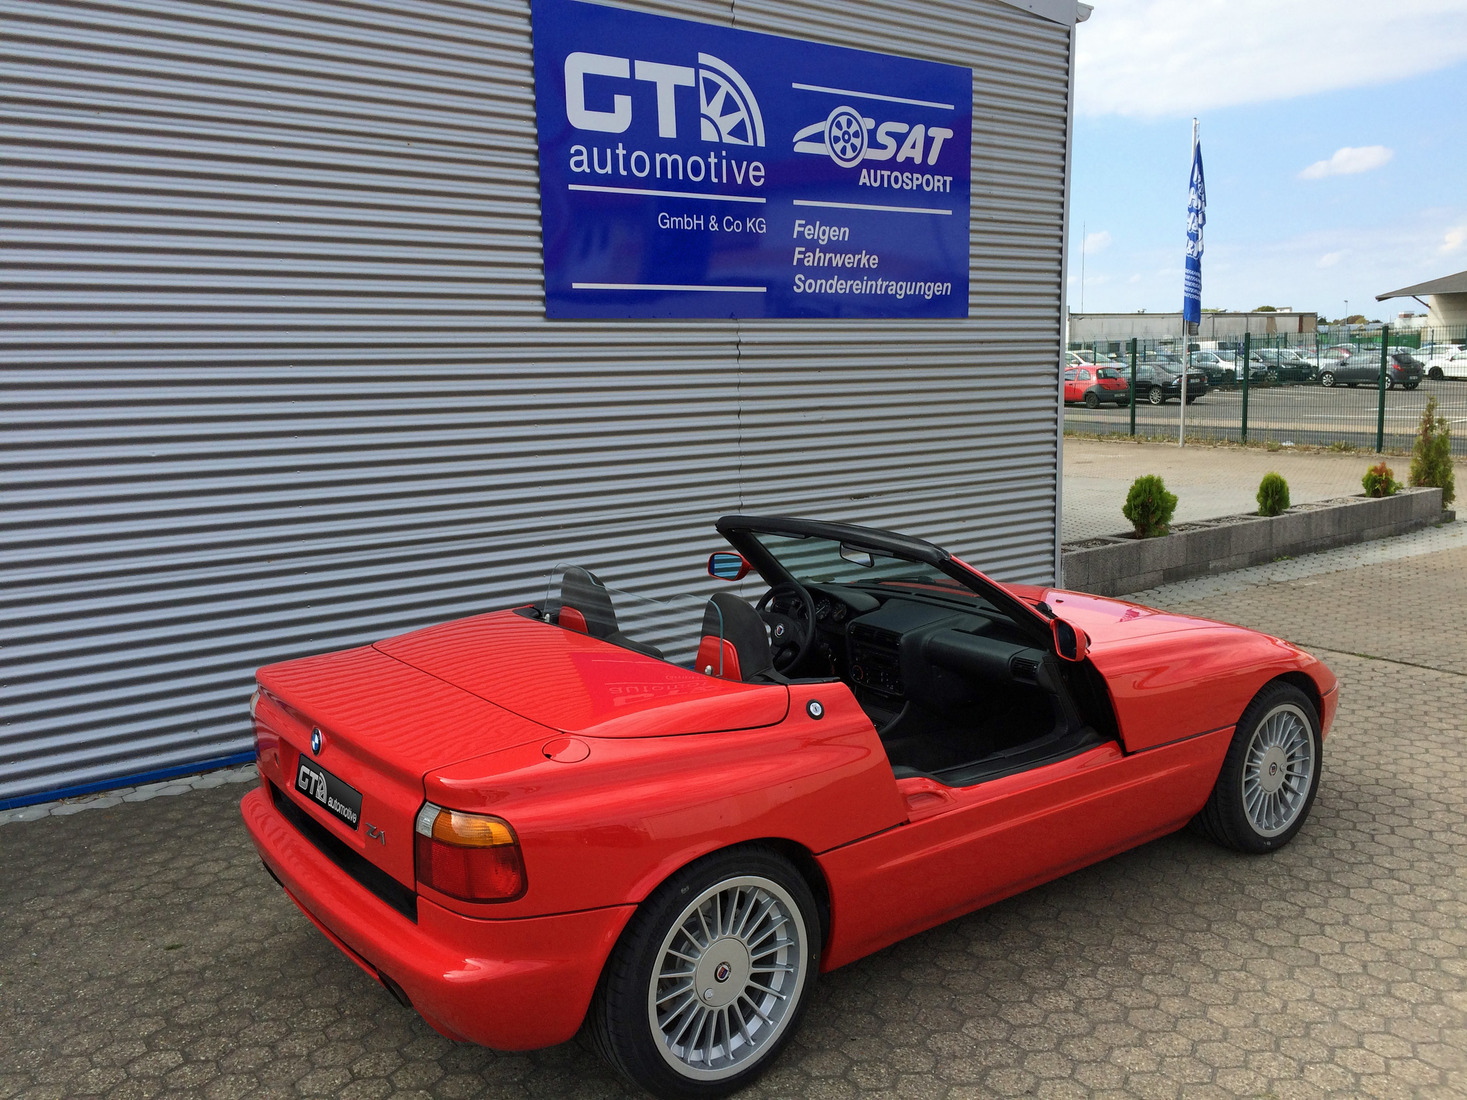 Sonderabnahme Bmw Alpina Felgen Bmw Z1 Gt Automotive